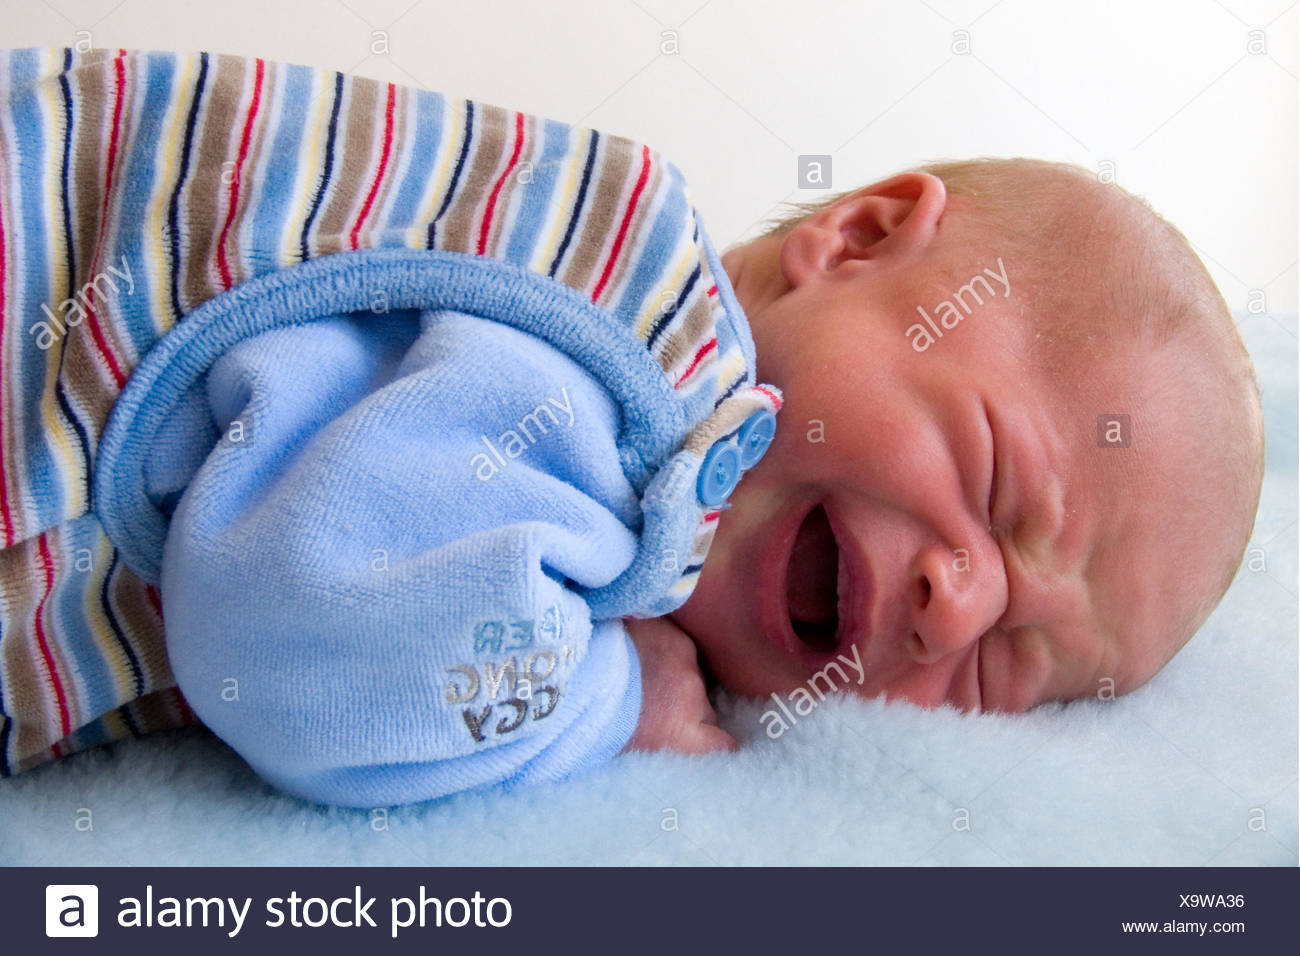 infant,approximately 1 month old - Stock Image